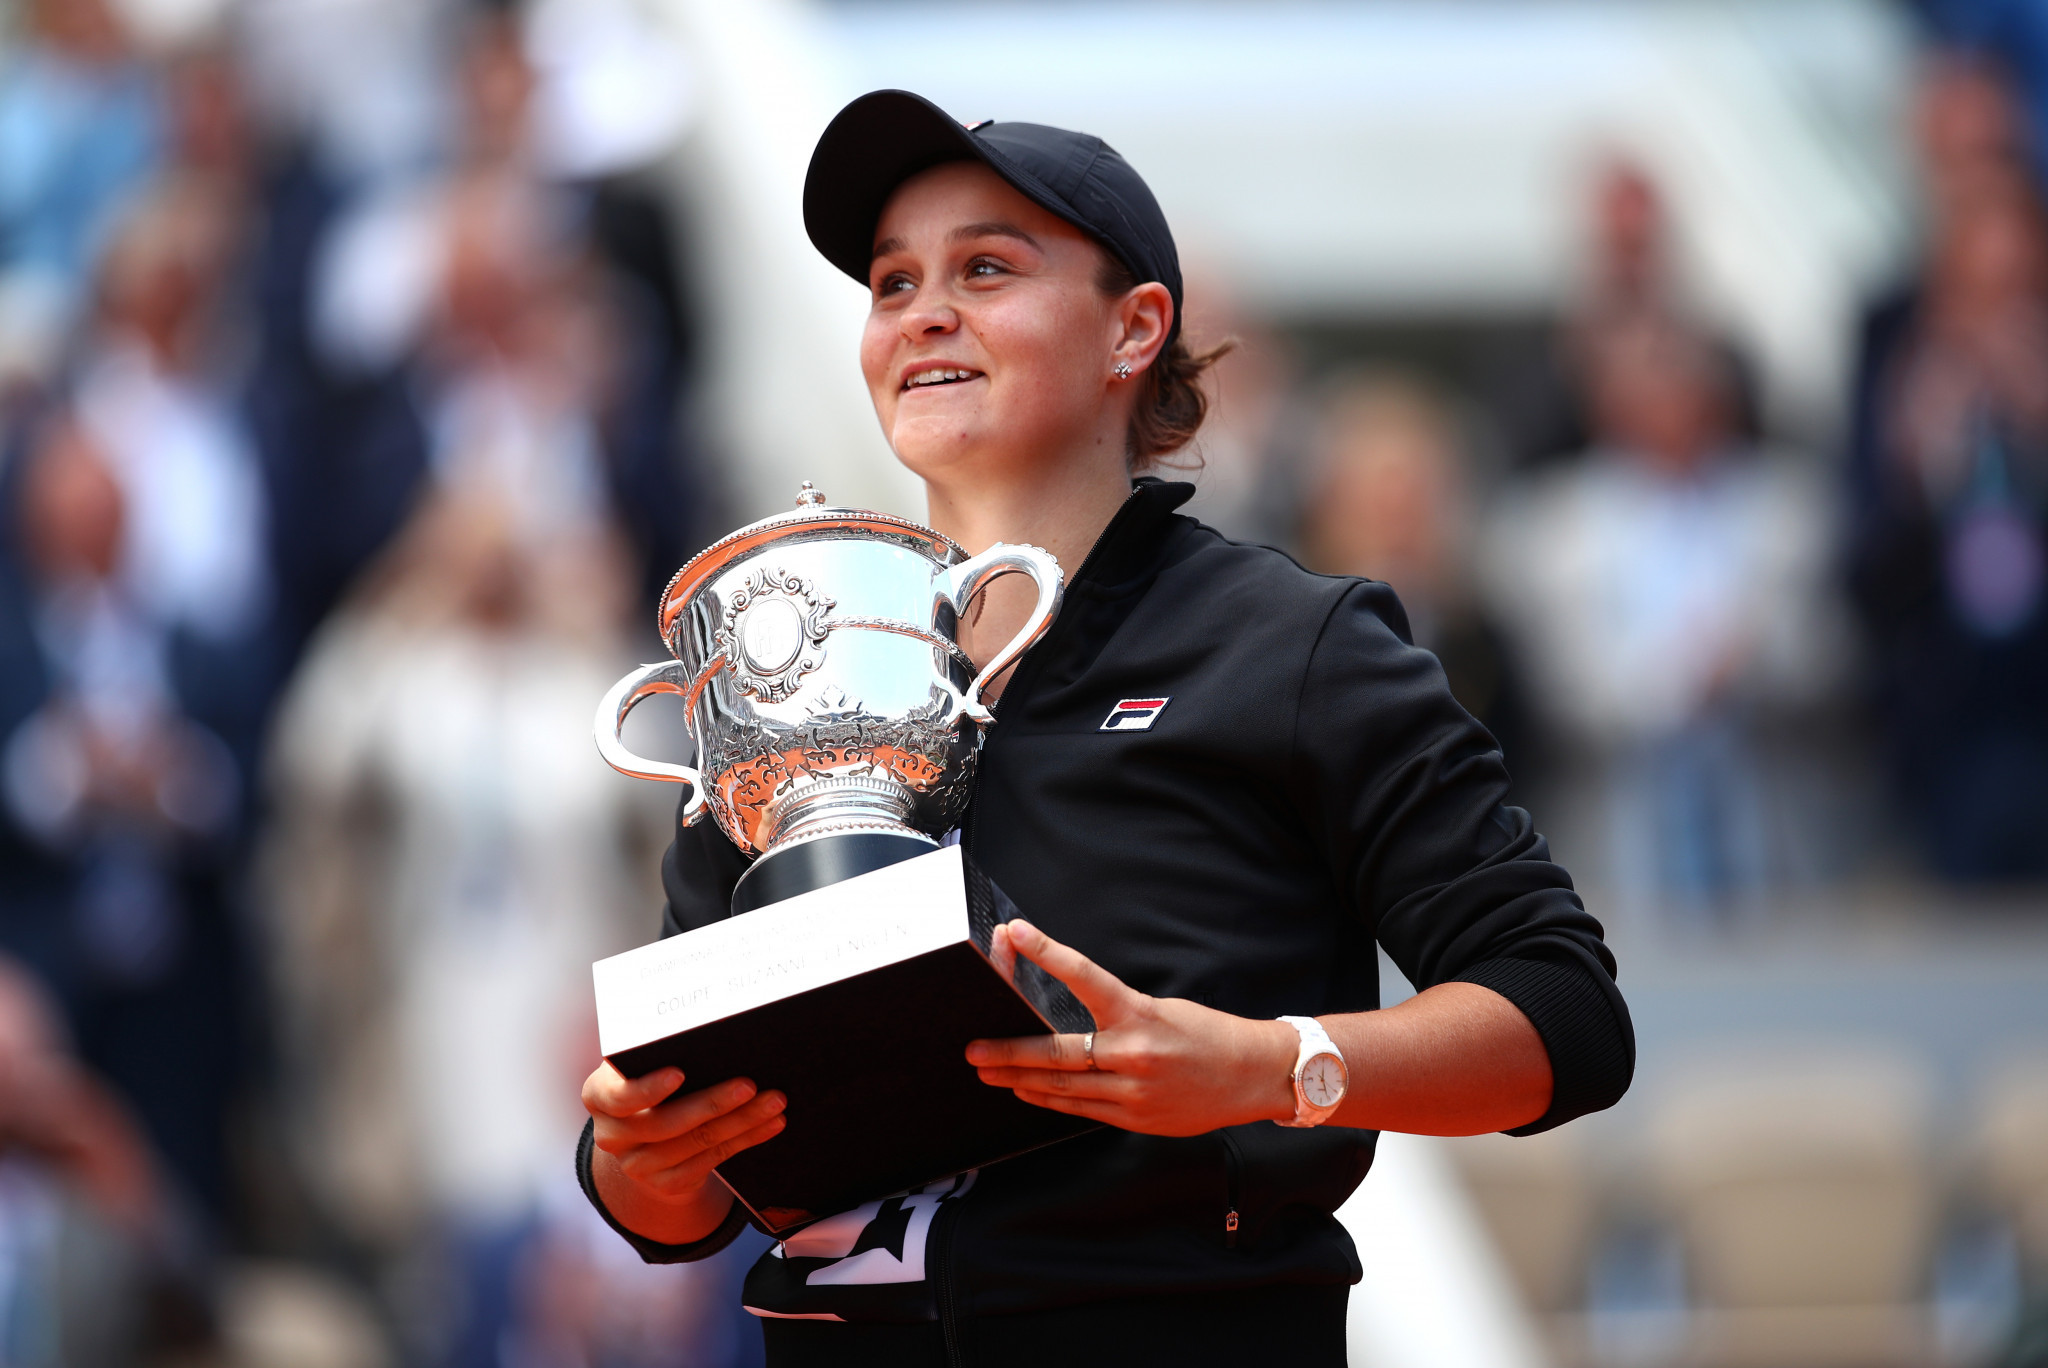 Ashleigh Barty has decided not to defend her French Open title due to COVID-19 concerns ©Getty Images